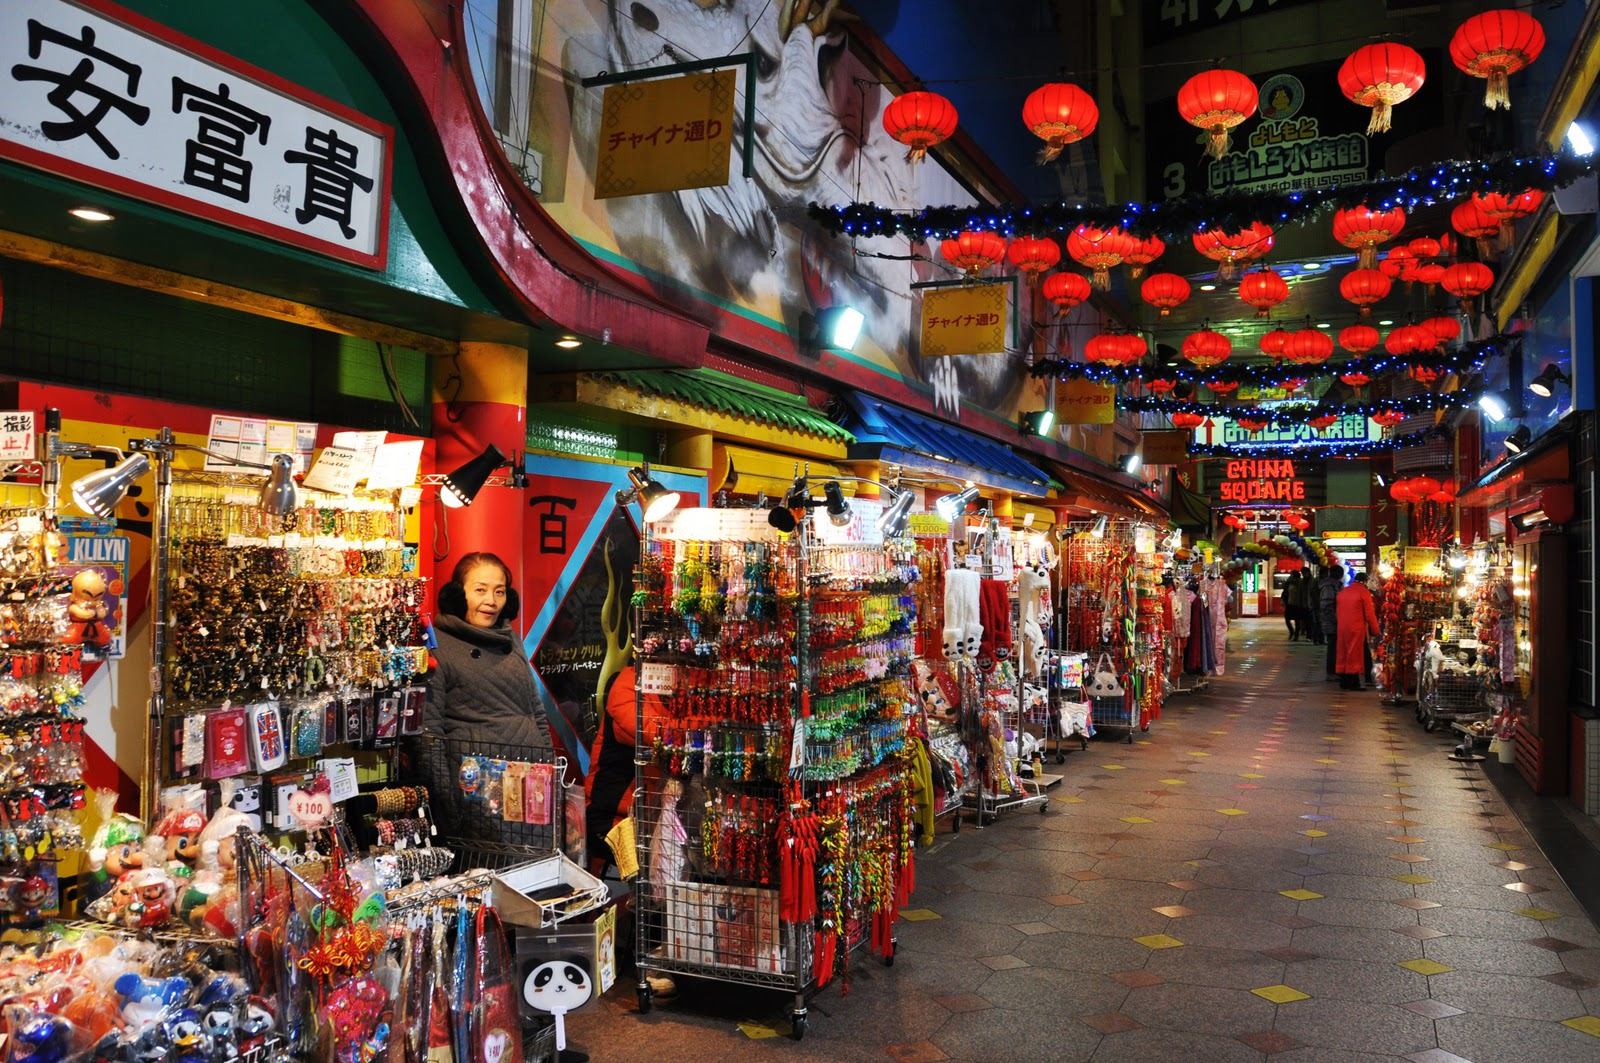 Tokyo Holiday Asias Largest Chinatown  Into the Ring of